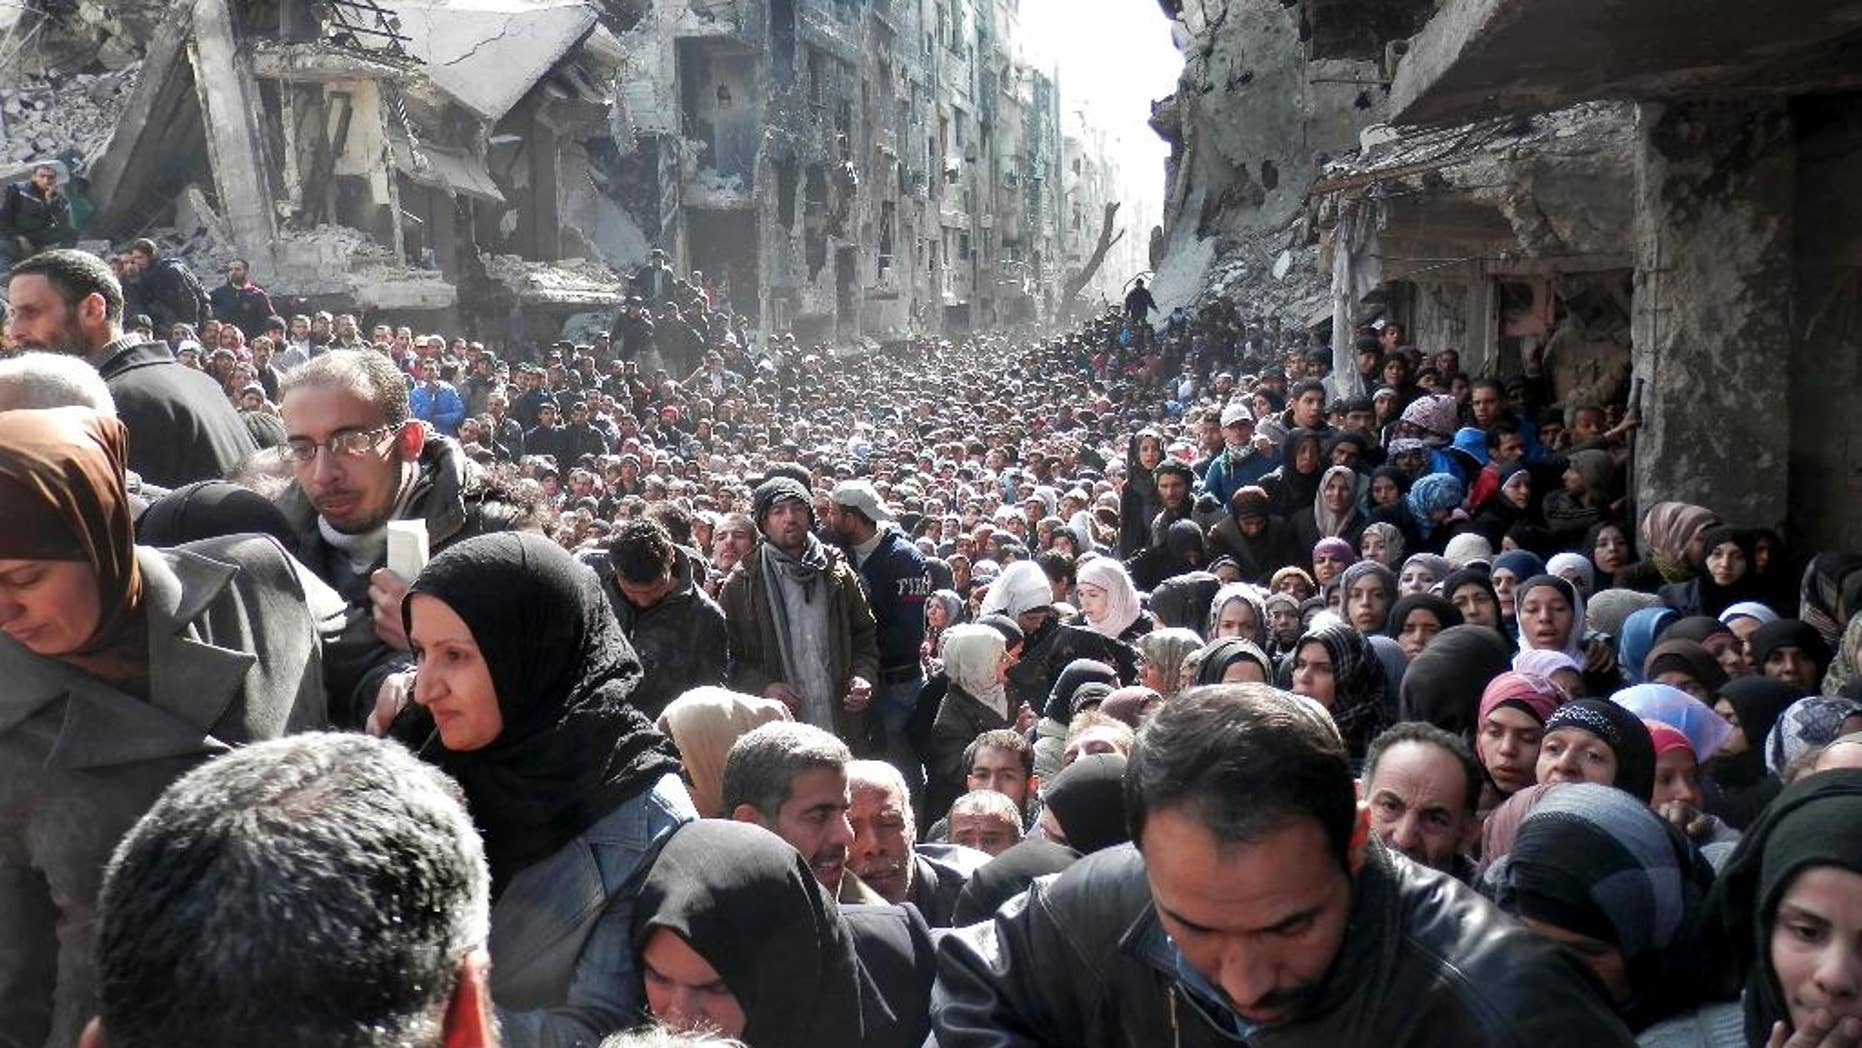 FILE - In this Jan. 31, 2014, file photo, released by the United Nations Relief and Works Agency for Palestine Refugees in the Near East (UNRWA), shows residents of the besieged Palestinian camp of Yarmouk, queuing to receive food supplies, in Damascus, Syria. UNRWA spokesman Christopher Gunness says the agency needs around $250 million to fund its cash program, which provides cash distributions for roughly half a million Palestinian refugees affected by the war in Syria. (AP Photo/UNRWA, File)